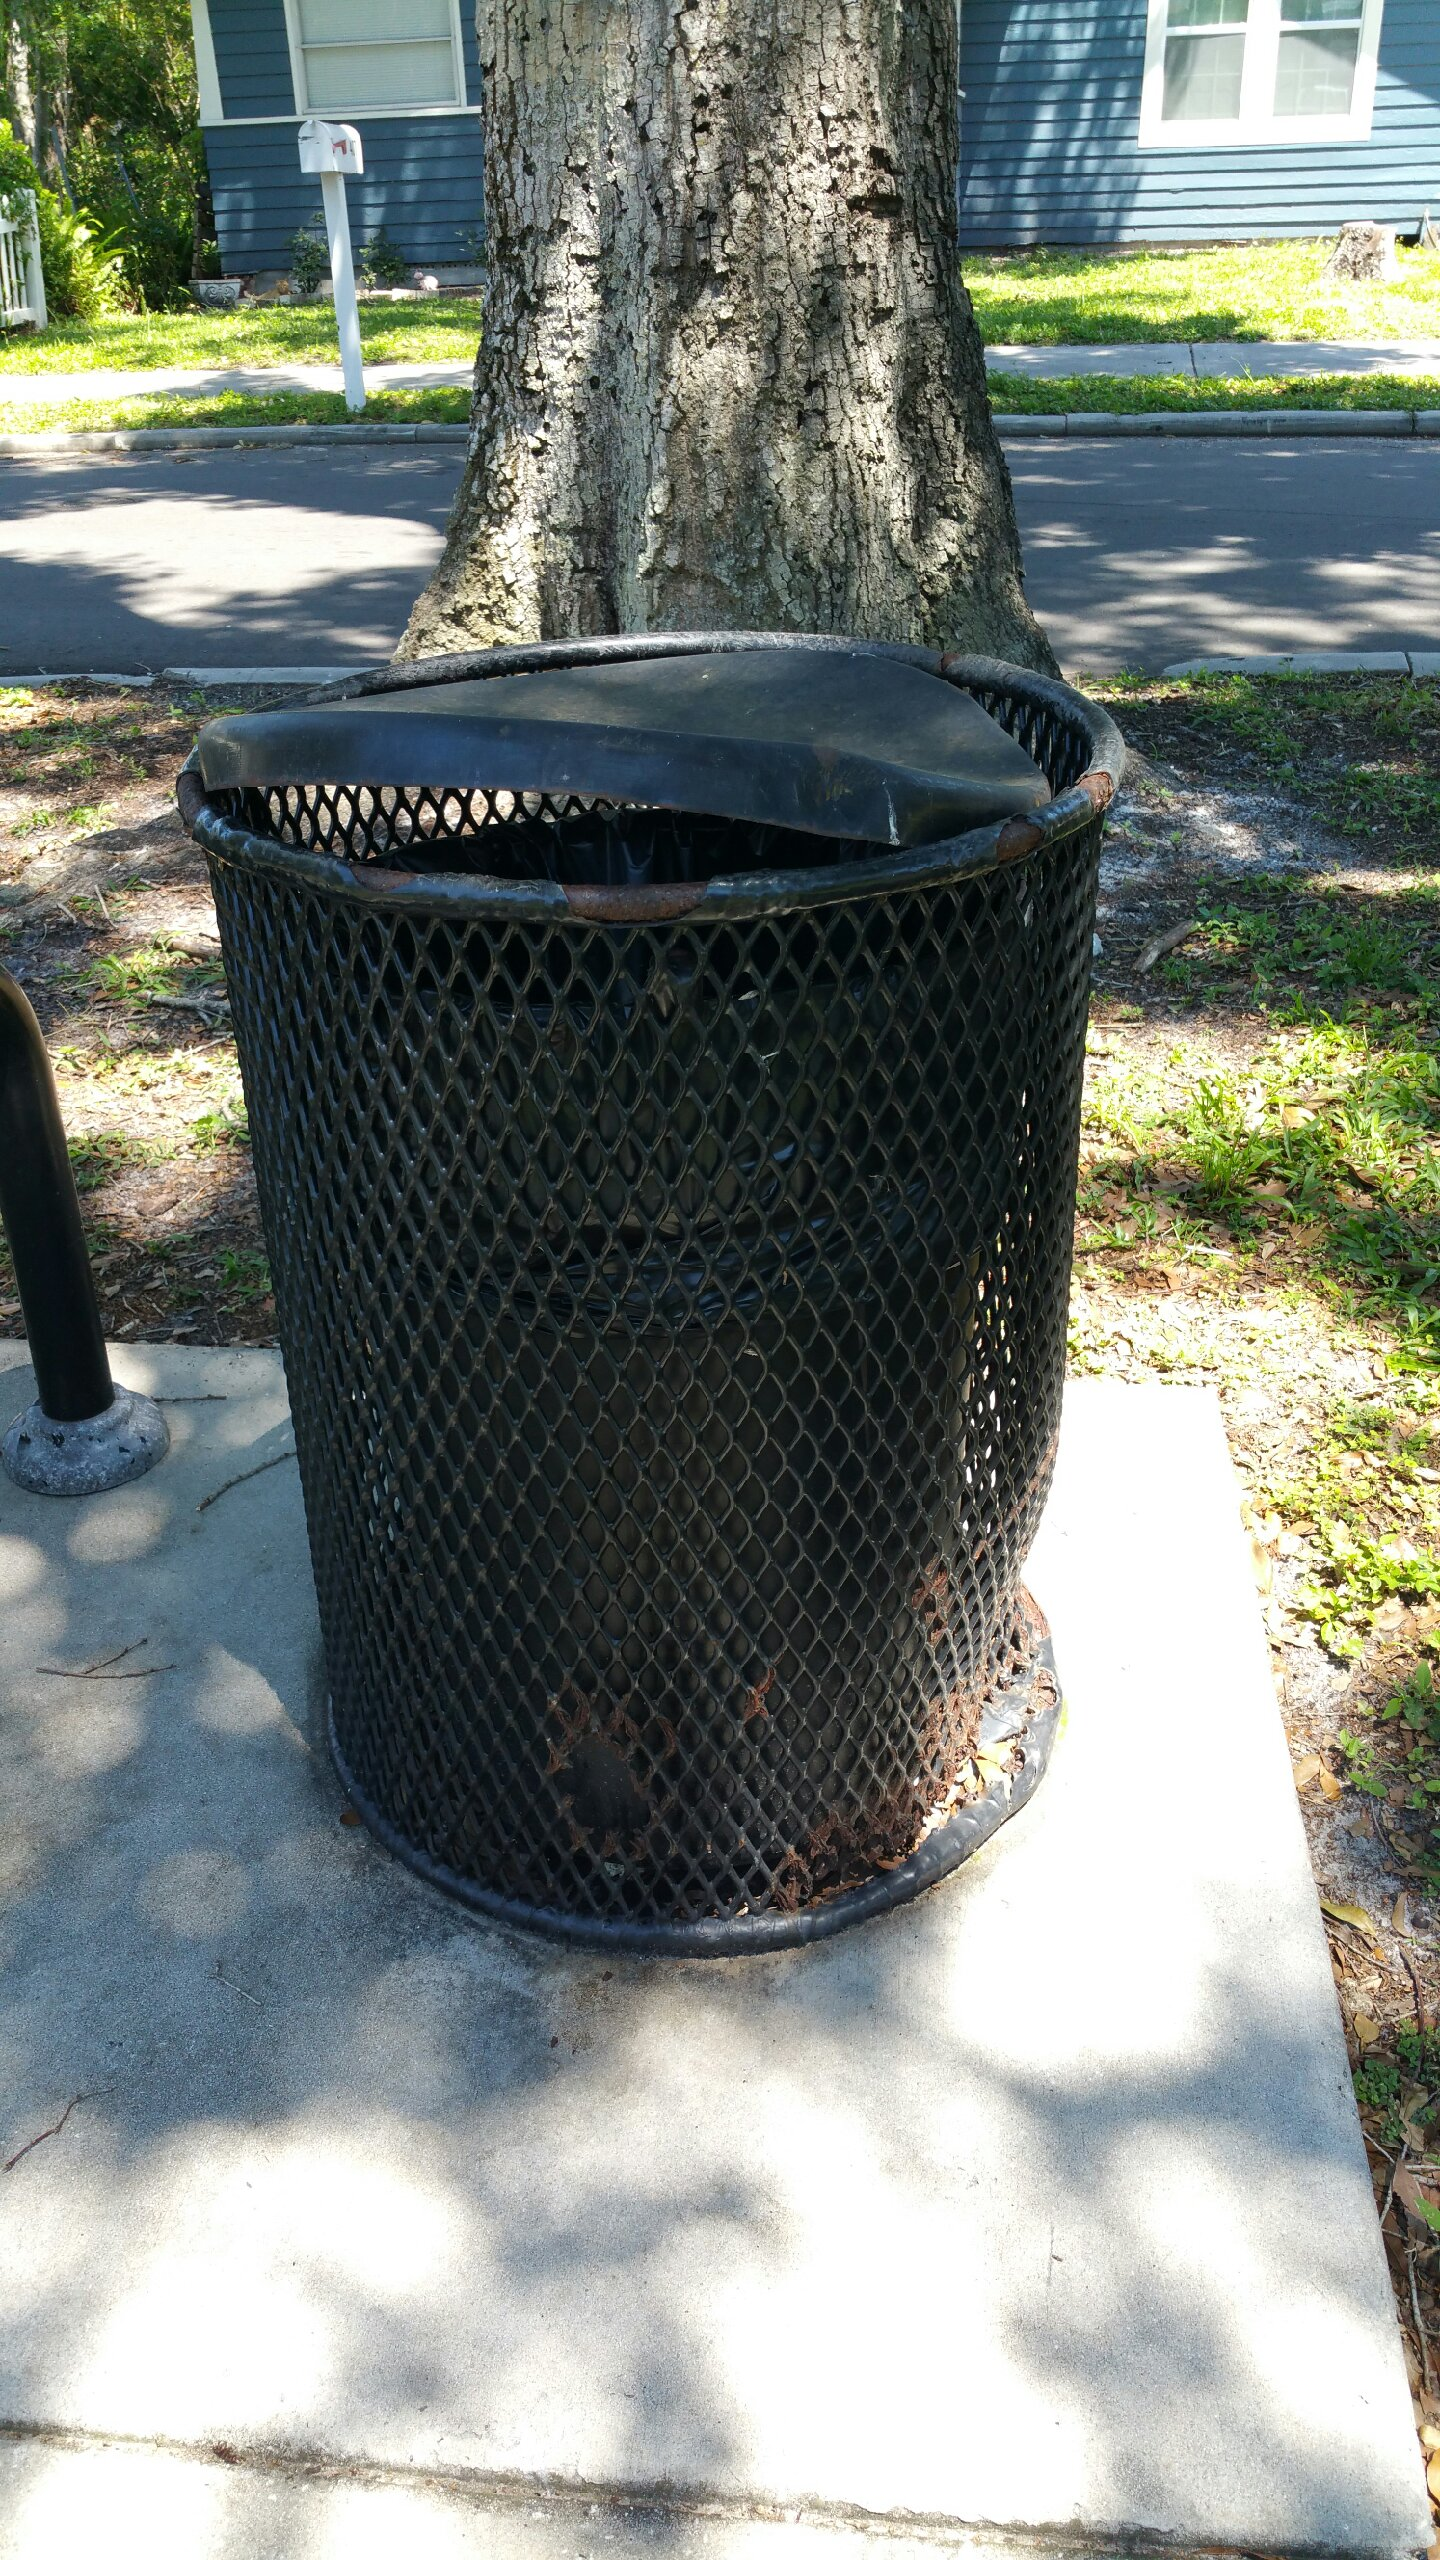 Garbage Cans were bent and rusted in the Plaza Park